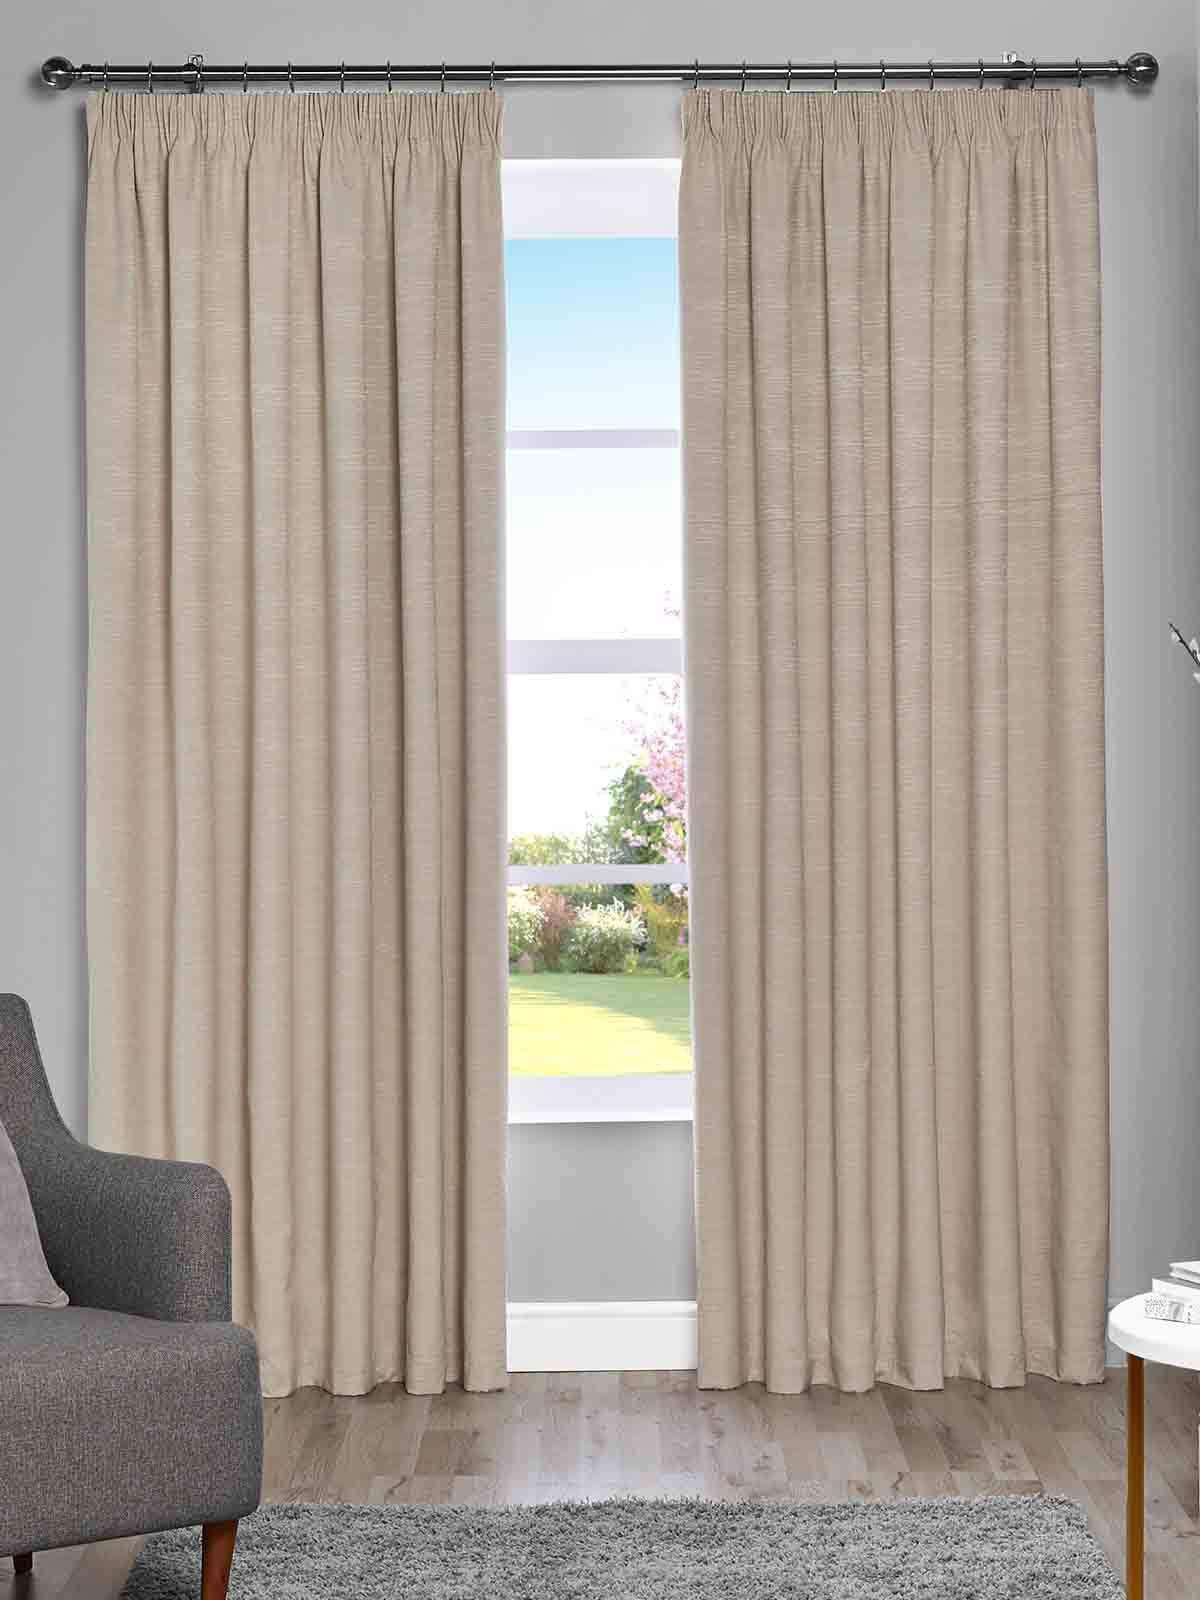 Harmony Blackout Pencil Pleat Curtains Throughout All Seasons Blackout Window Curtains (Image 15 of 20)